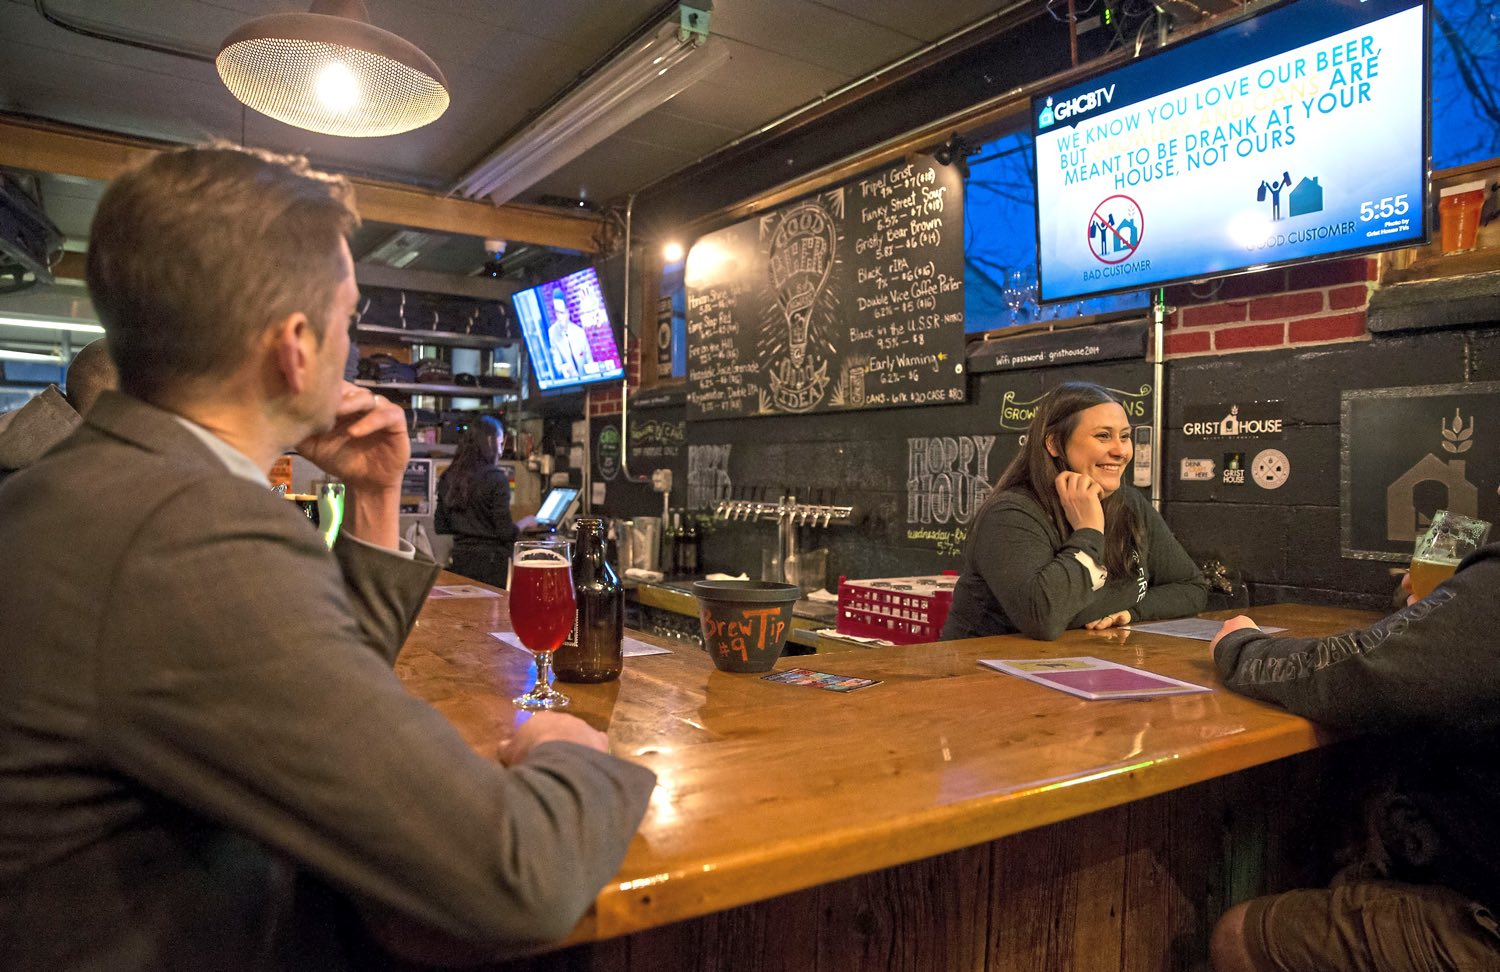 Bartender Jami Spatta chats with patrons at the Grist House Craft Brewery, as part of the Distinction Series, on Tuesday, Jan. 30, 2018 in Millvale. (Antonella Crescimbeni/Post-Gazette)